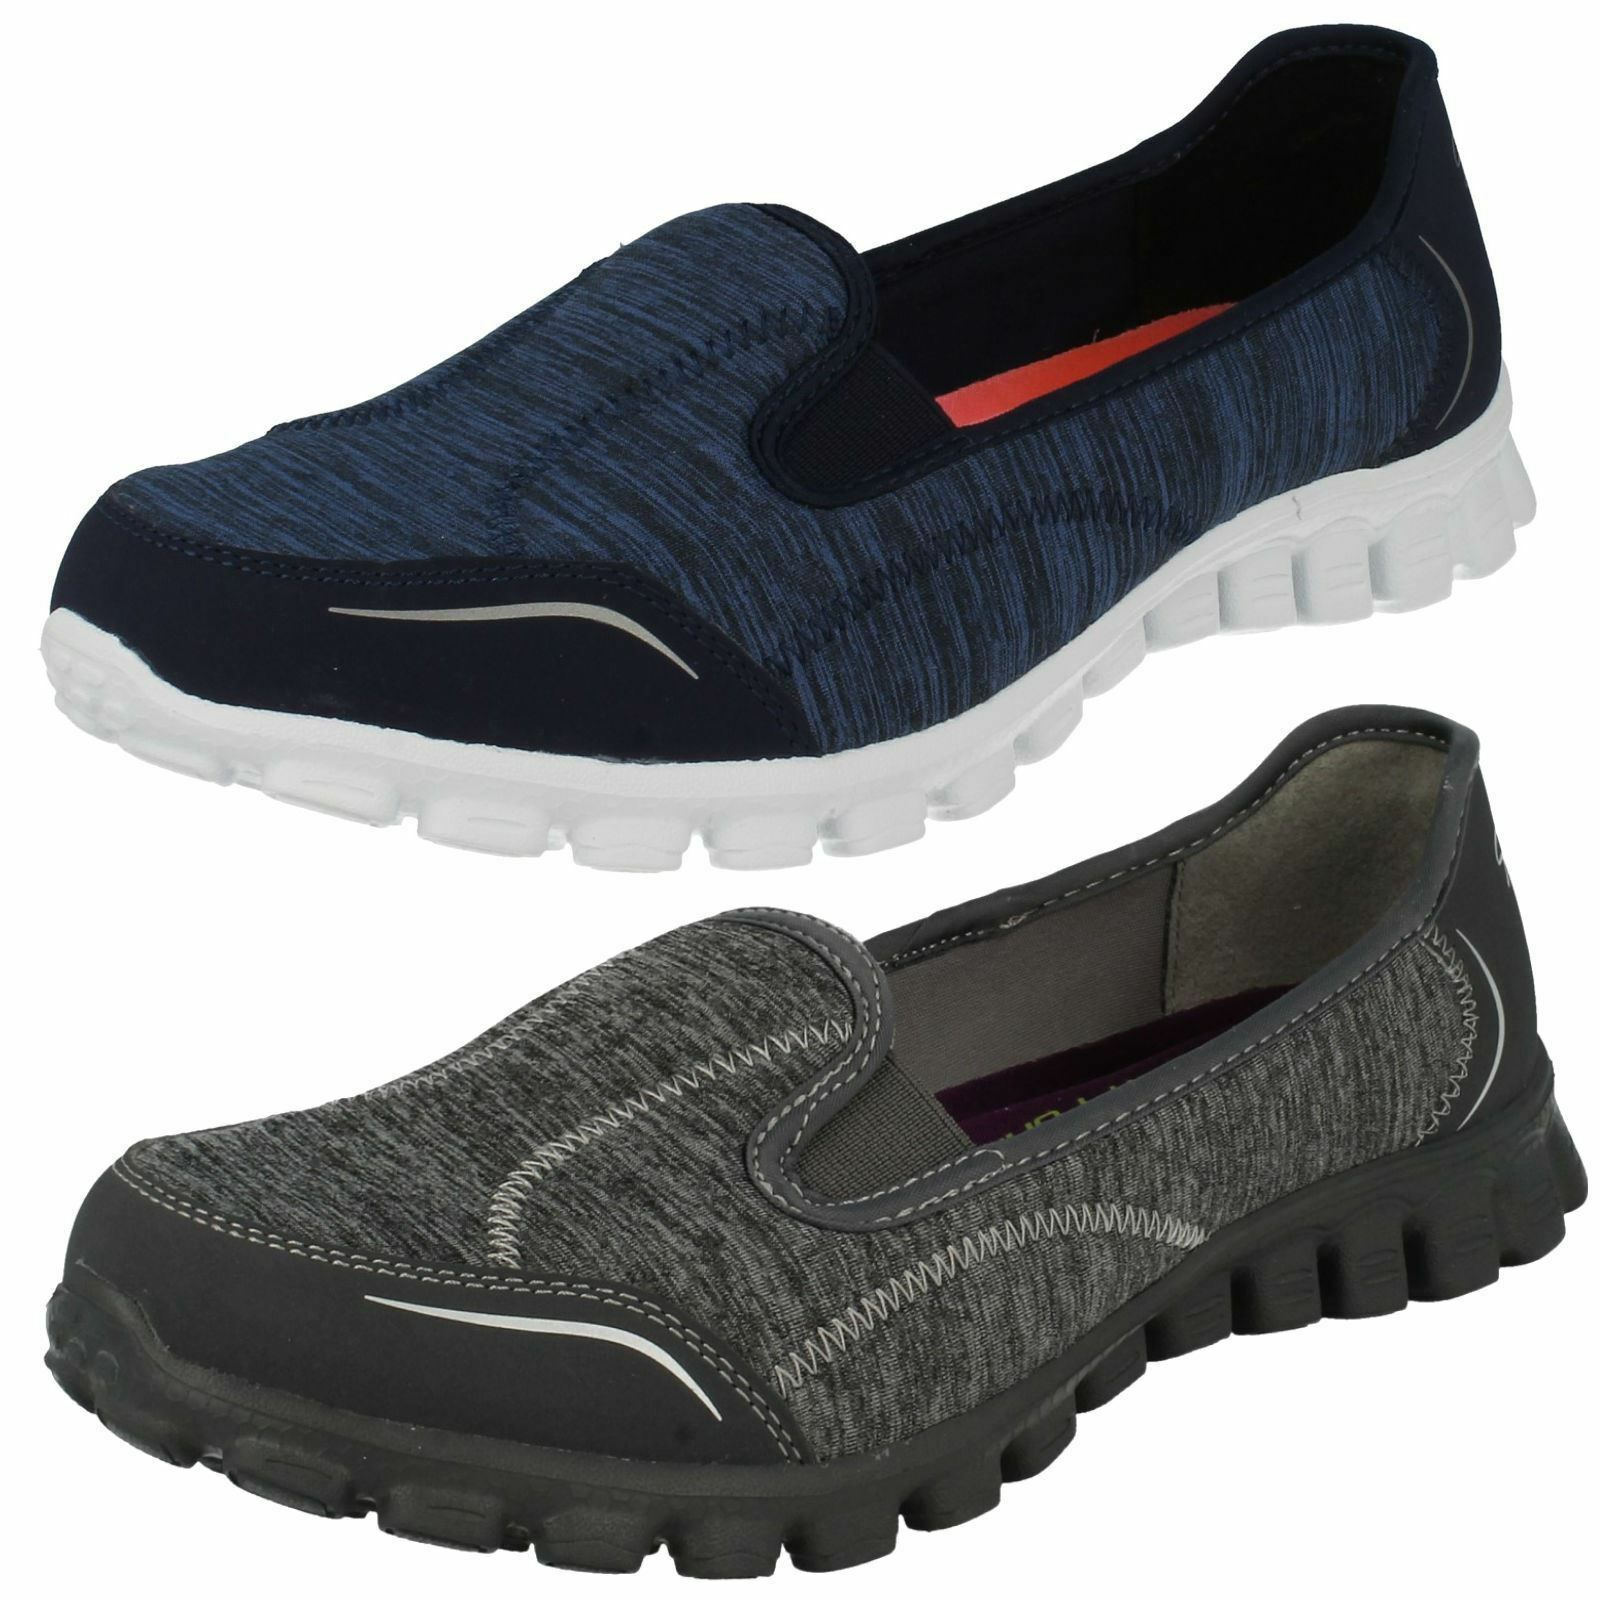 Ladies Skechers flex memory foam shoe Encounter